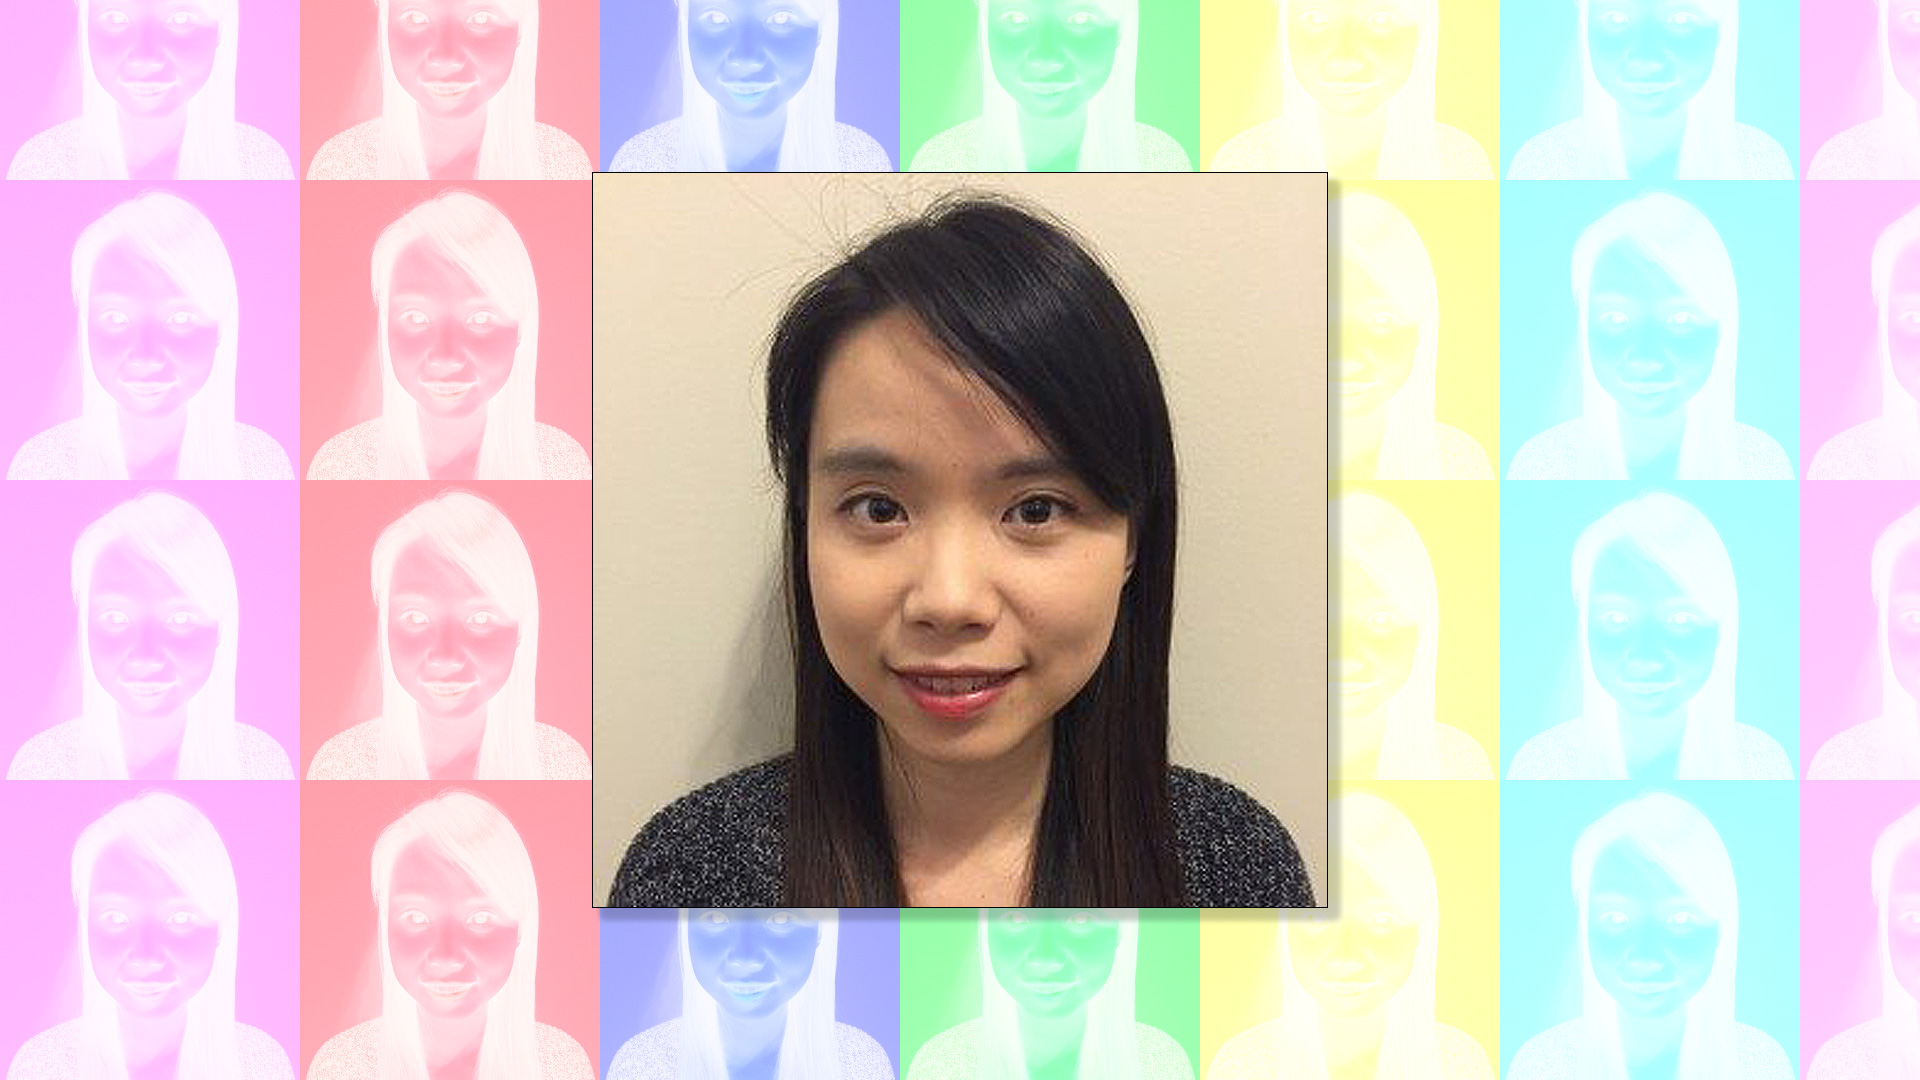 Jingxuan Liu headshot over a multicolored background